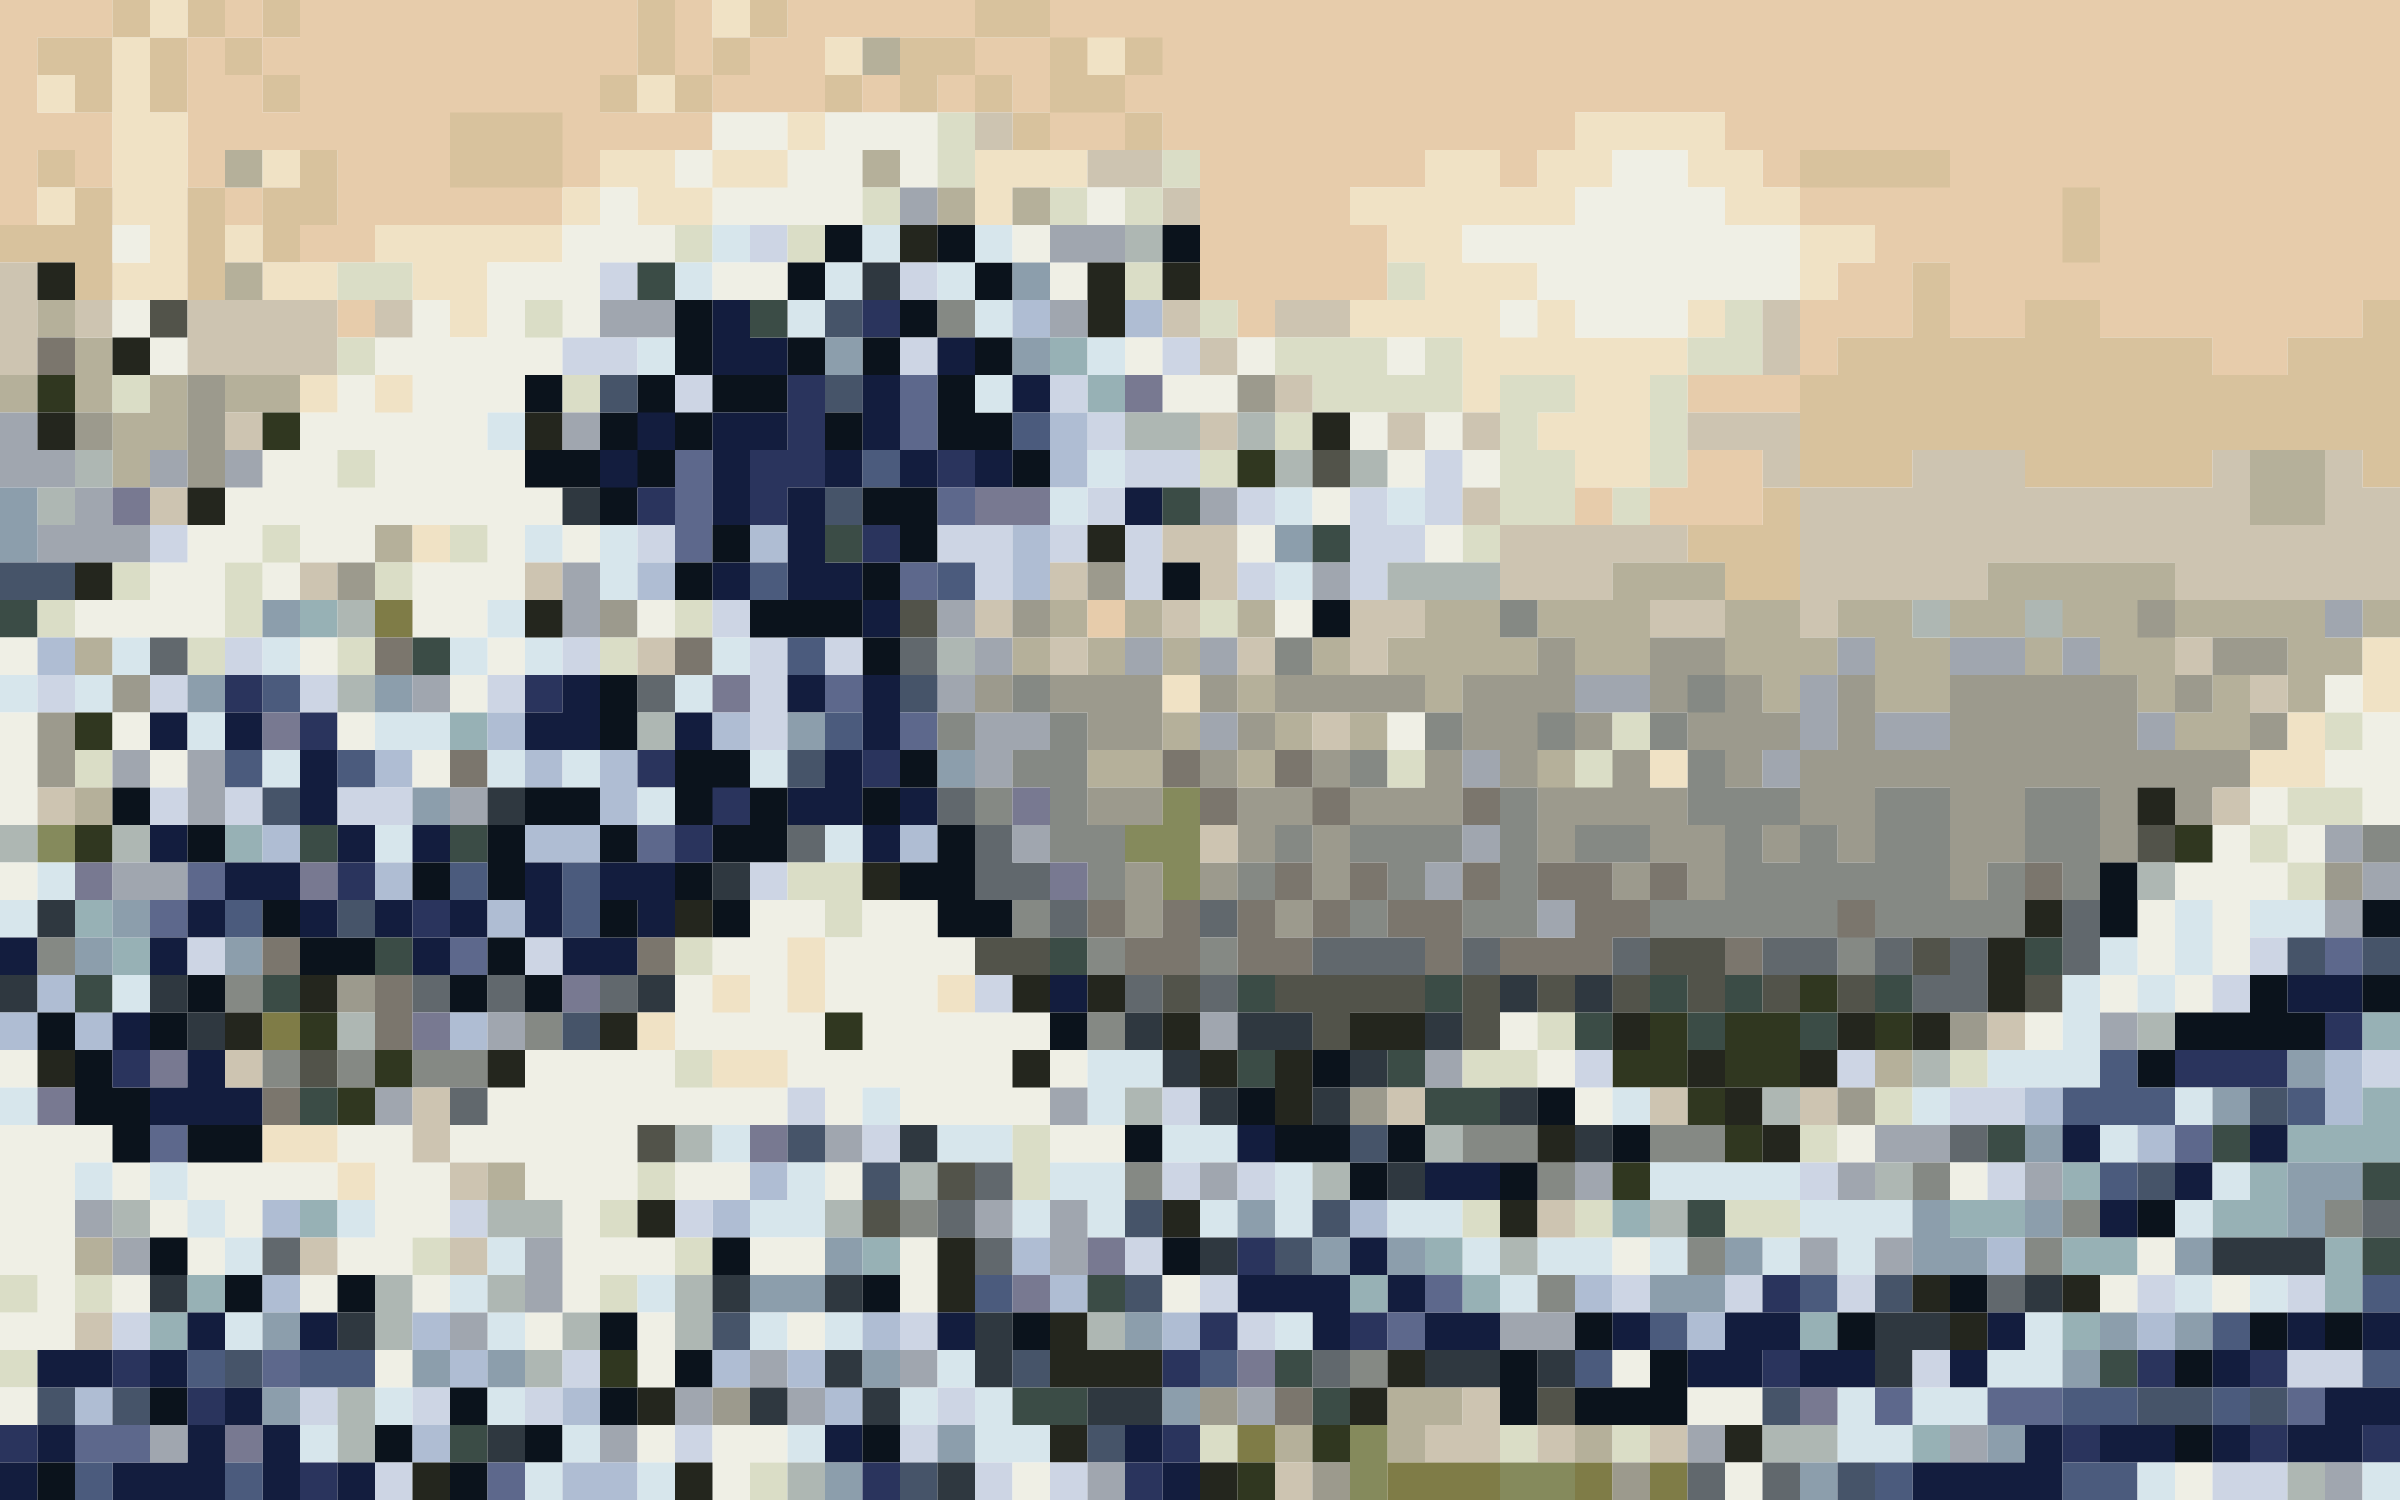 Hokusais Great Wave of Kanagawa Pixelized by wallpapergirl